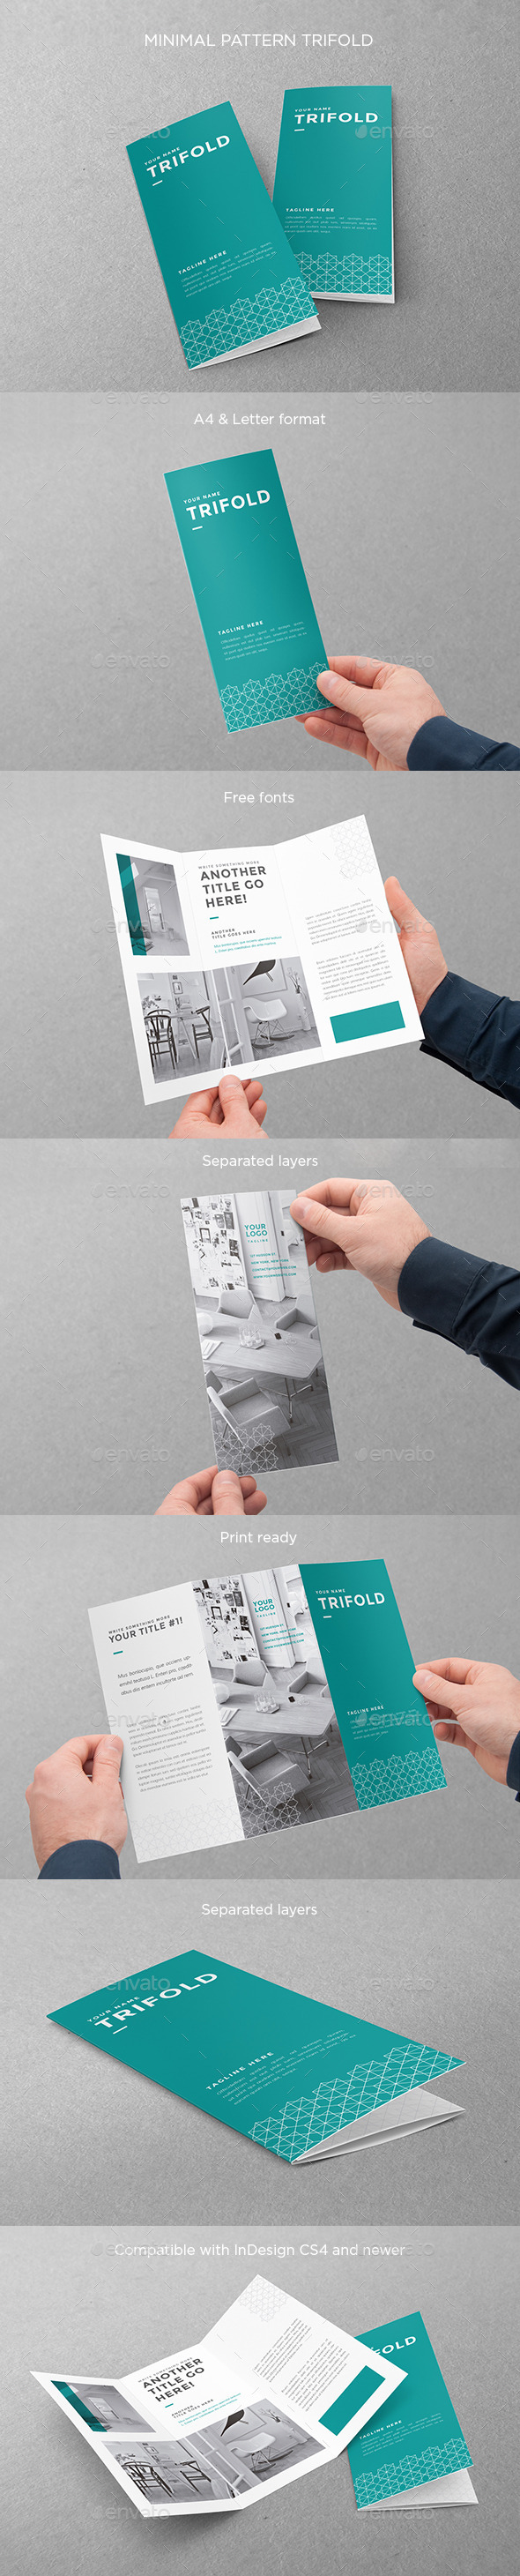 Minimal Pattern Trifold - Brochures Print Templates